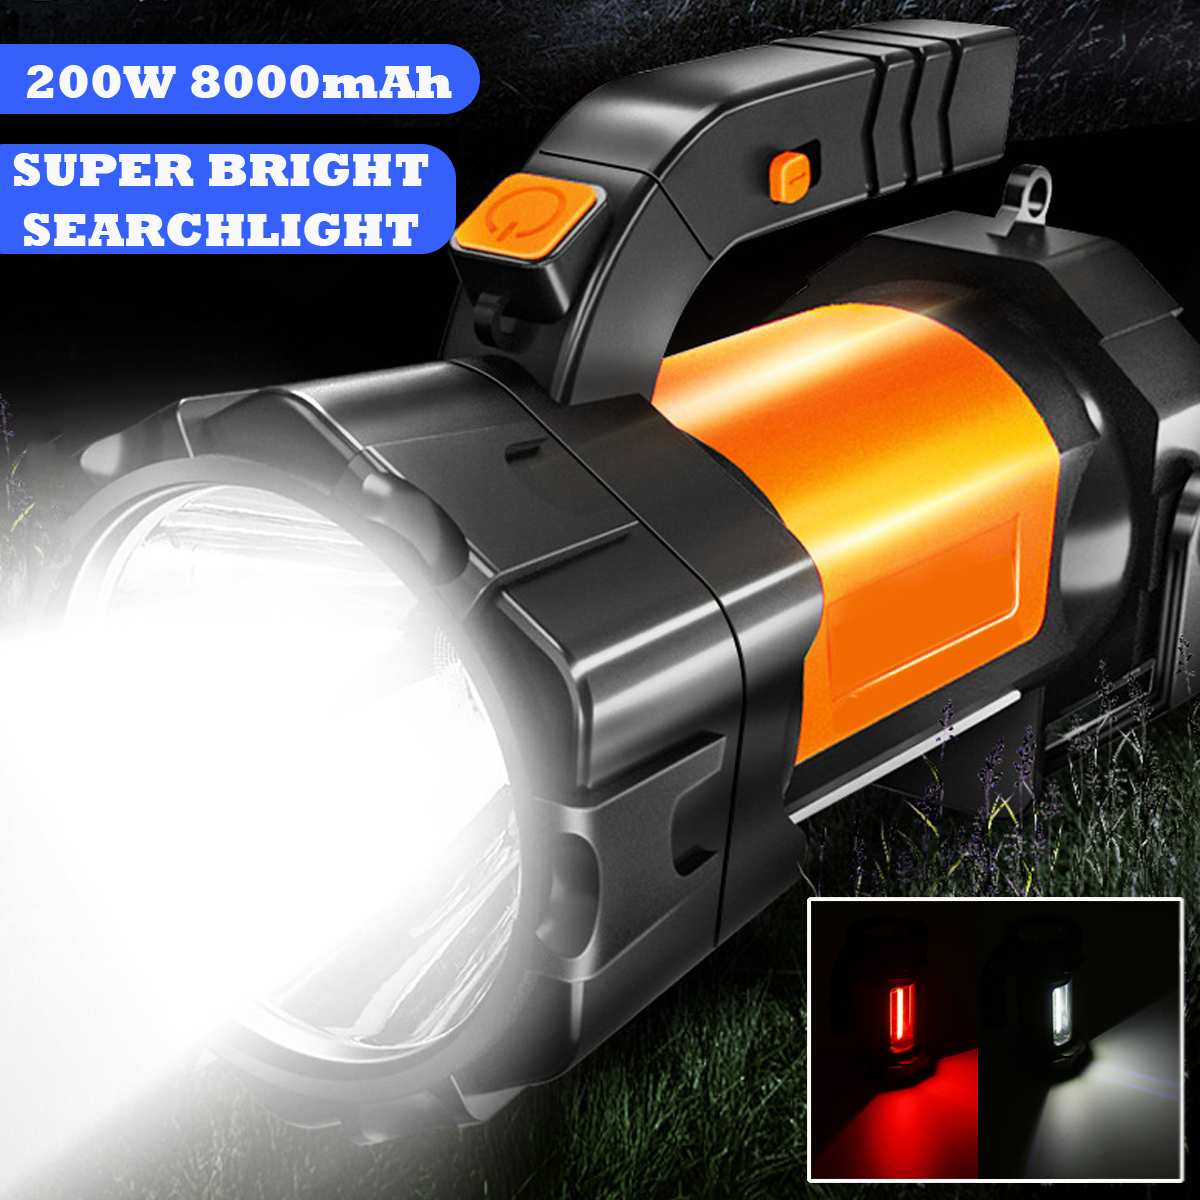 200W 2000LM Handheld Spotlight Portable USB Built-in Rechargeable LED Searchlight Lantern Flashlight Waterproof Spot Lamp